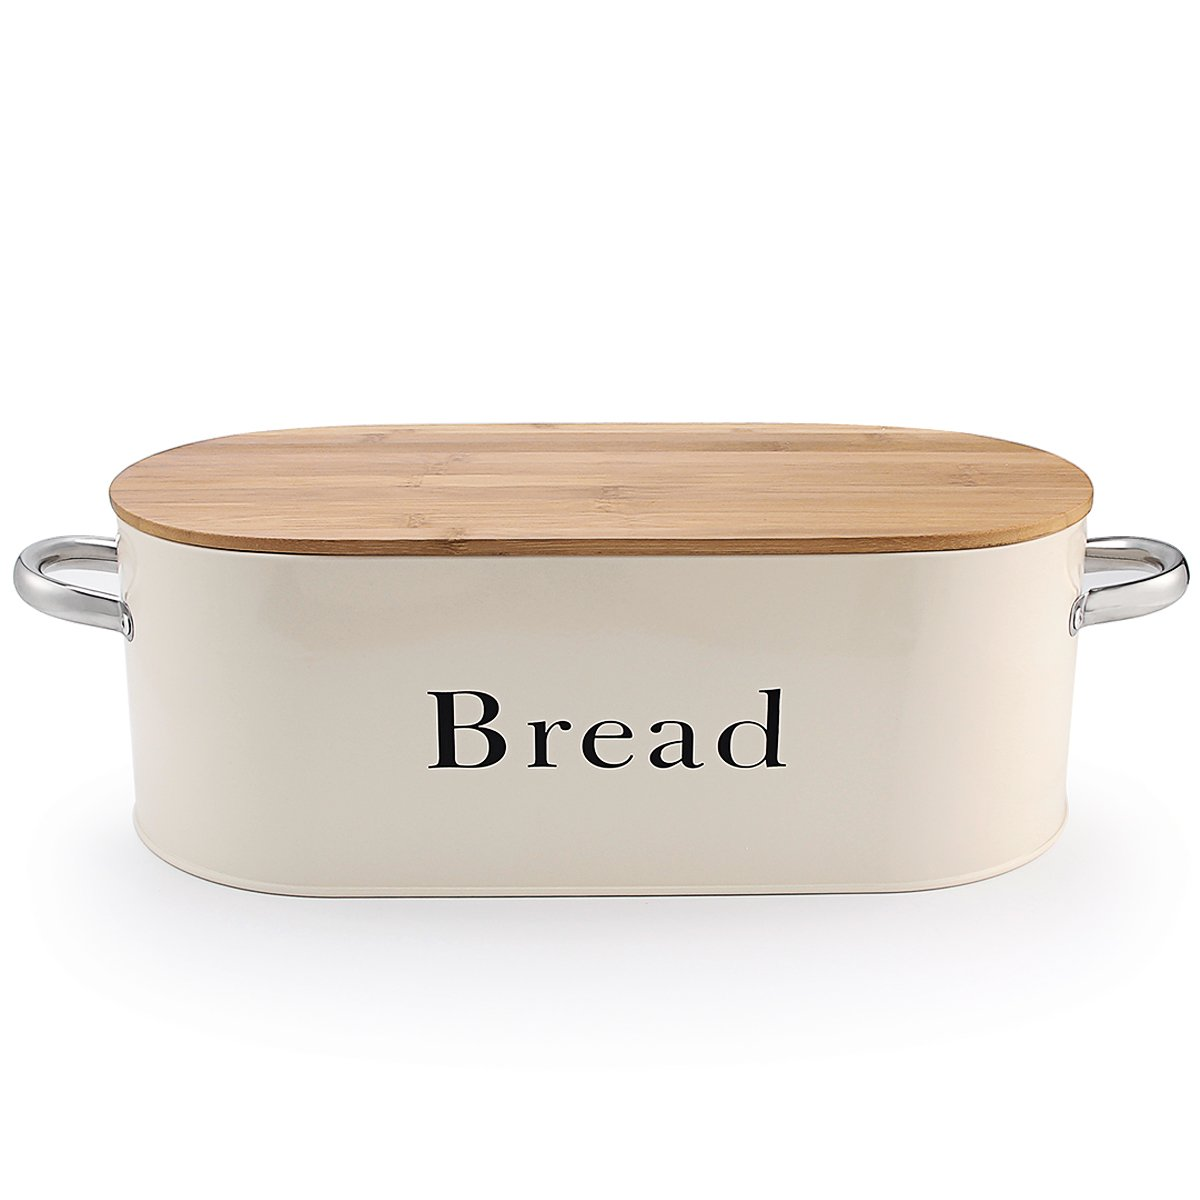 SveBake Bread Box for Kitchen Counter Vintage & Retro Metal Bread Bin with Bamboo Lid and Handle, Cream (Included a Free PDF Baking E-BOOK)